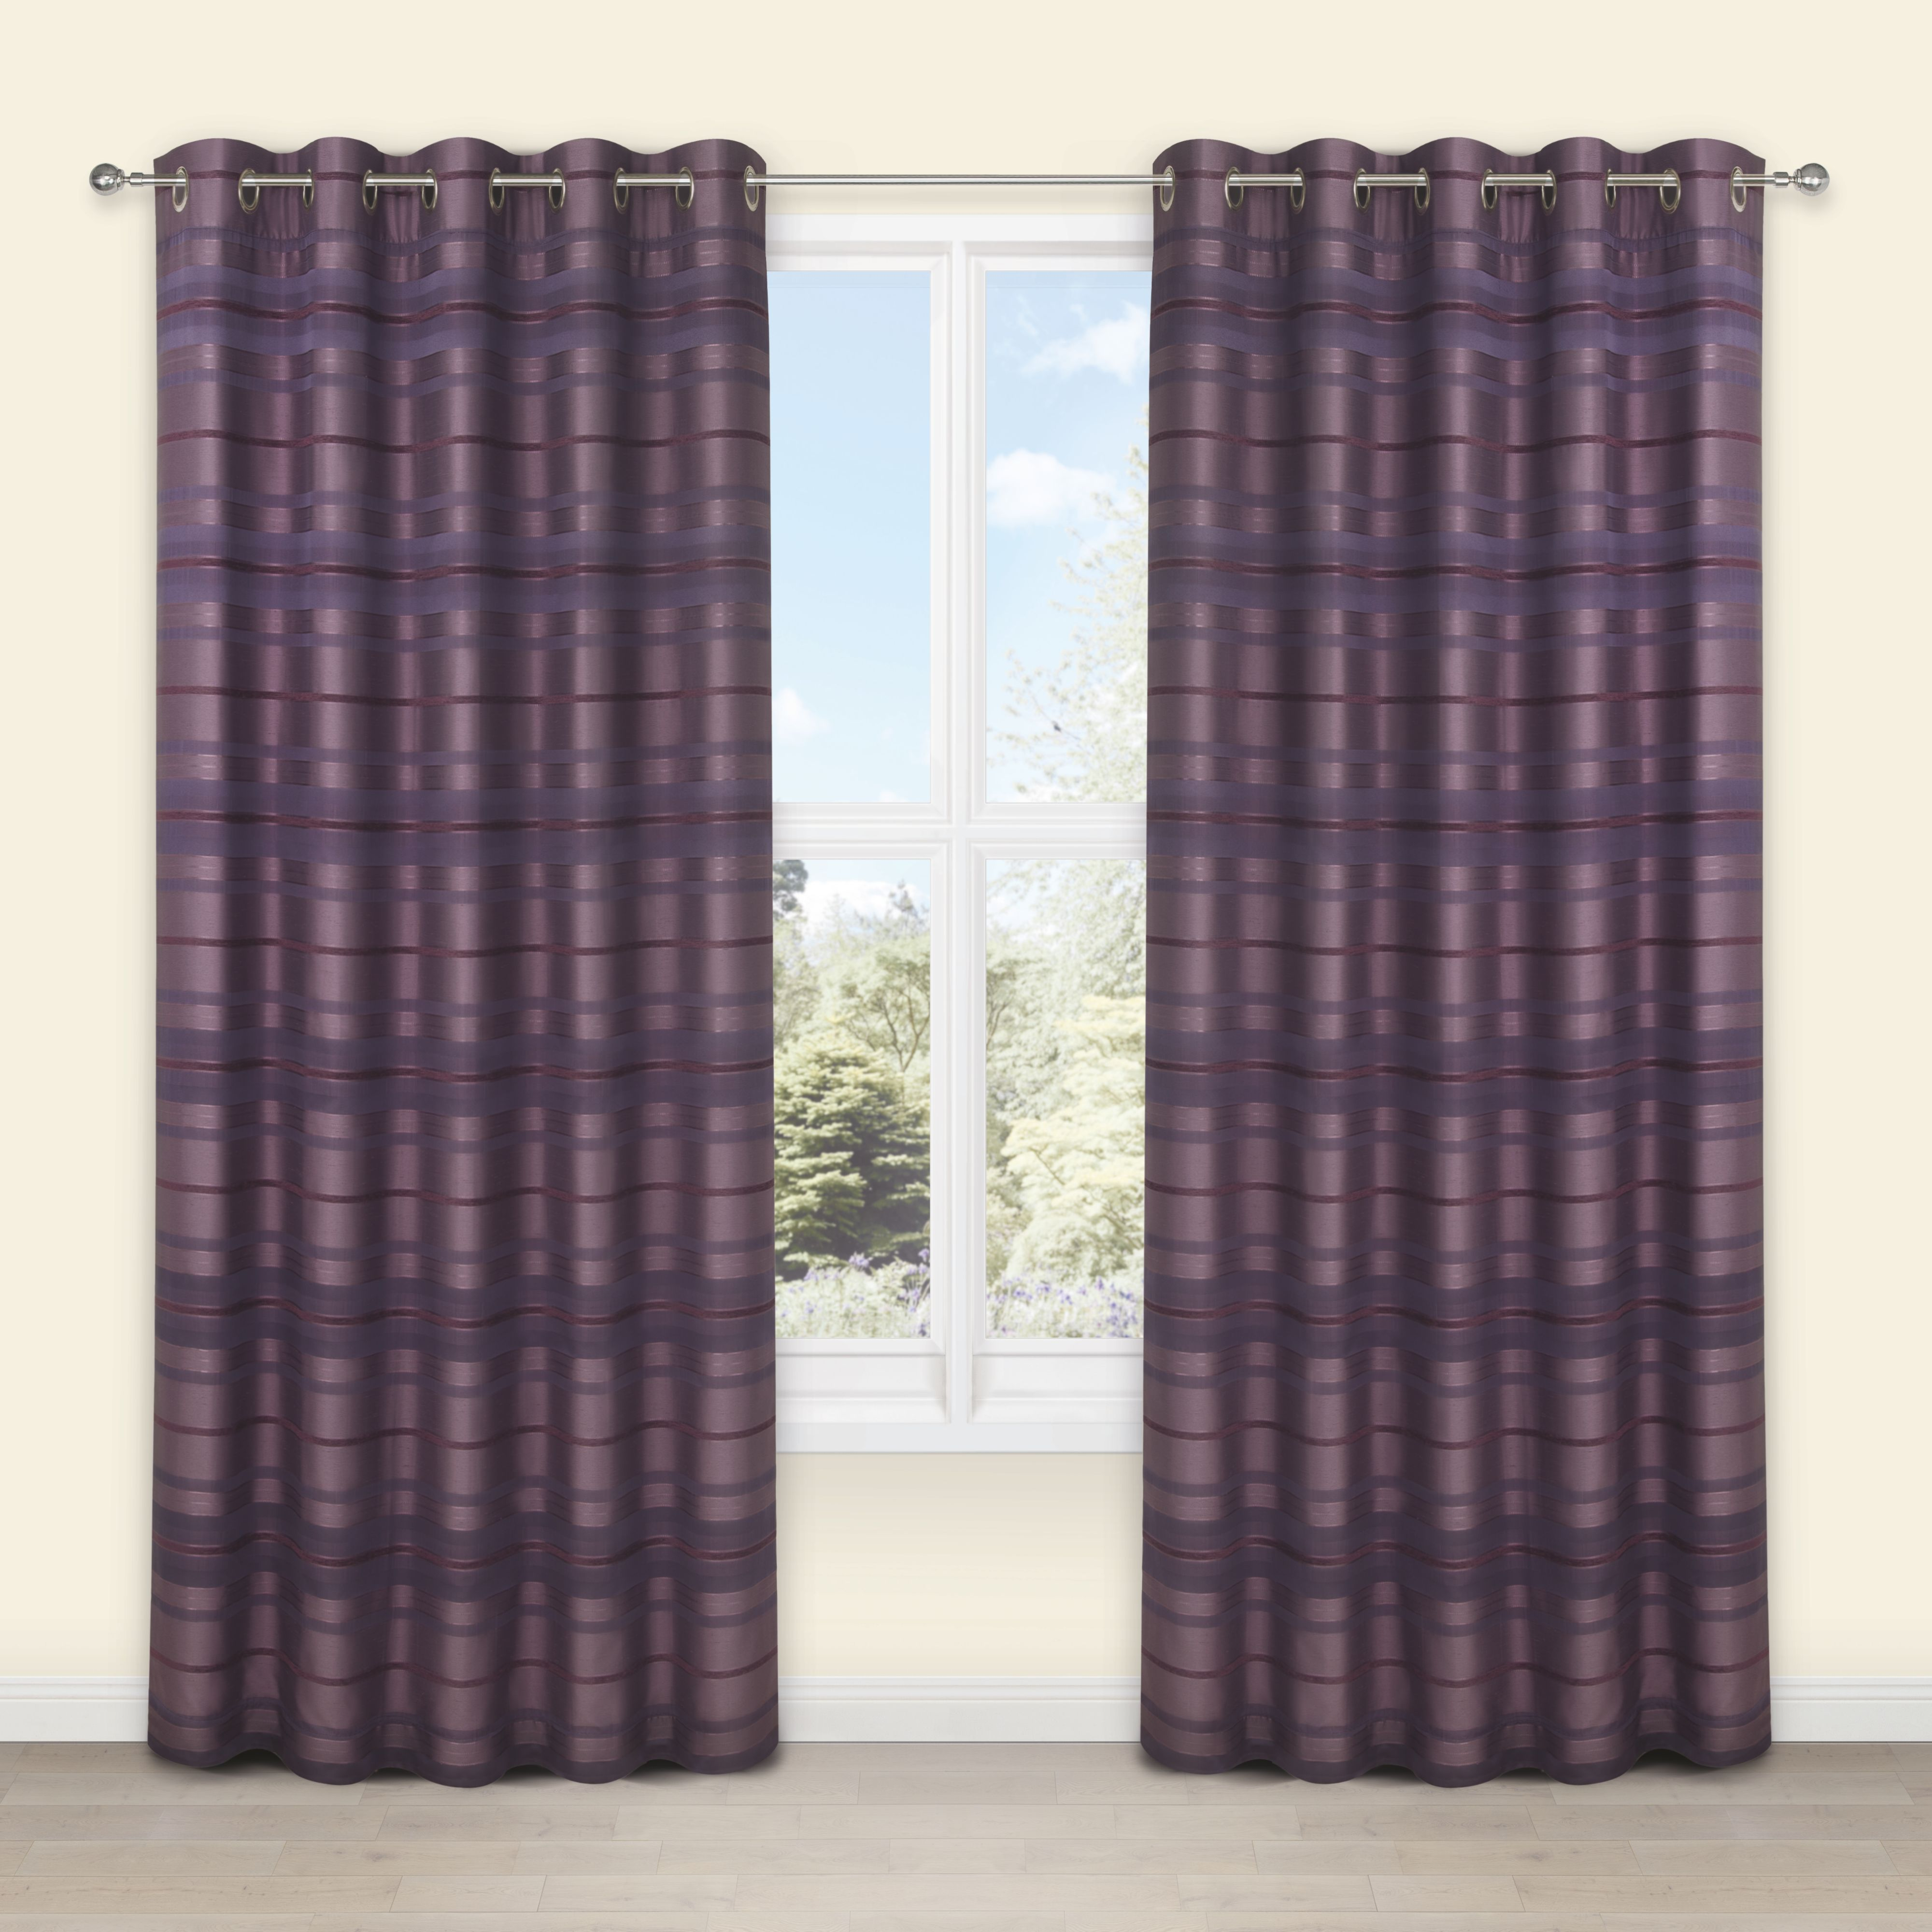 Plum coloured bathroom accessories - Sarina Blueberry Plum Striped Woven Eyelet Lined Curtains W 117cm L